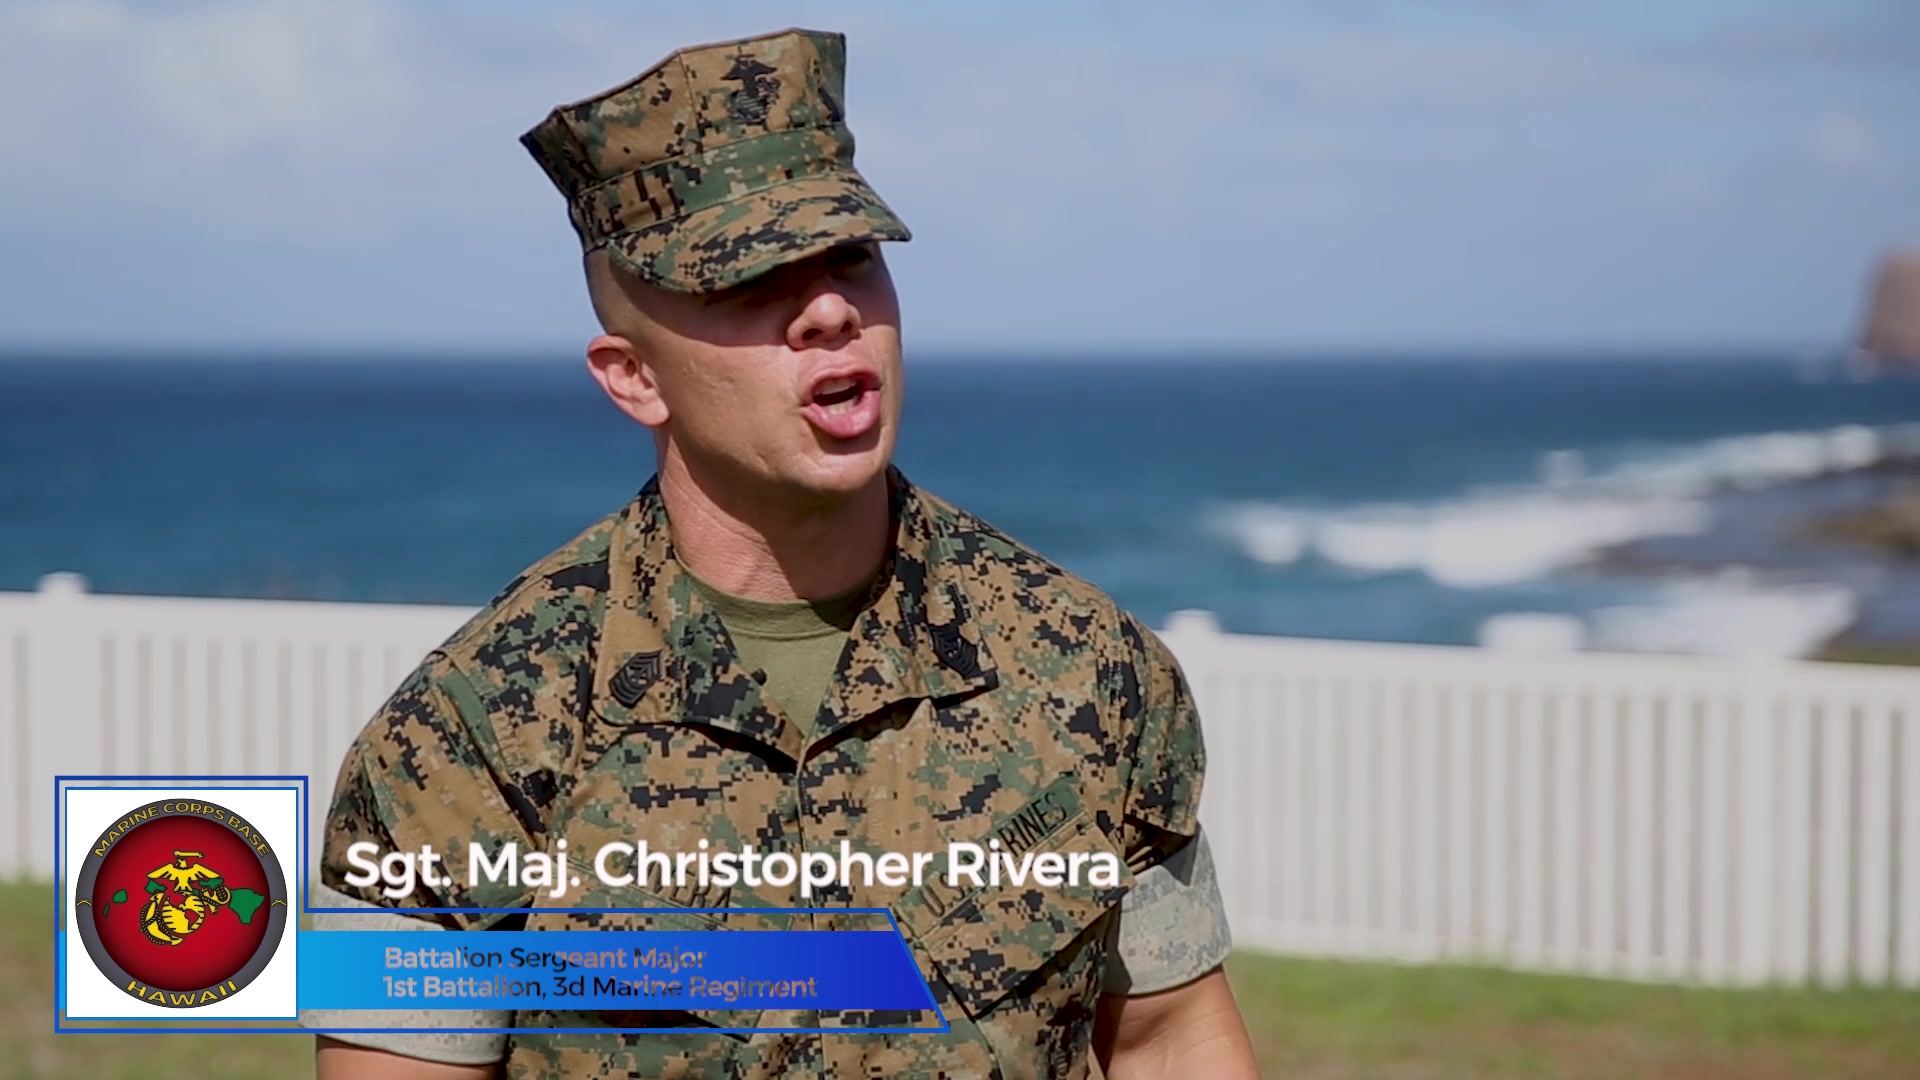 U.S. Marine Corps Lt. Col. Andrew Gourgoumis relinquishes command of 1st Battalion, 3rd Marine Regiment to Lt. Col. Adam Sacchetti during a ceremony aboard Marine Corps Base Hawaii, Jan. 22, 2021. The ceremony was modified due to COVID-19 restrictions, but still served to honor the tradition of the passing of the organizational colors between the outgoing and incoming commanding officer. (U.S. Marine Corps video by Sgt. Luke Kuennen)